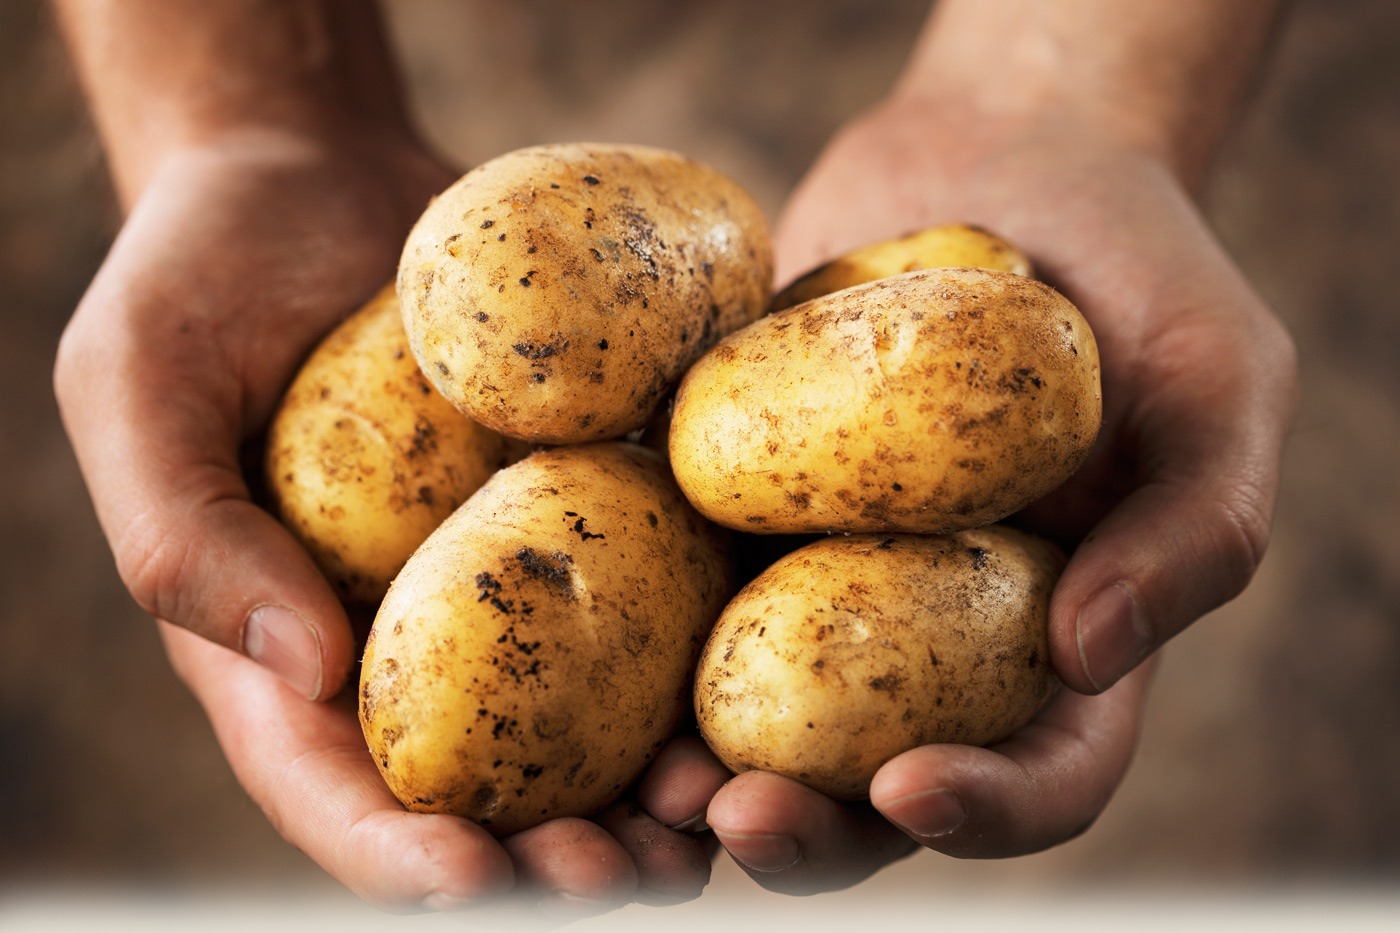 Washing you're hair with potatoes water is so healthy potatoes contain a lot of vitamins boil it for about an hour let it cool down and even after you already had wash your hair just dump potato water on you're hair to give it vitamins :) goodluck!